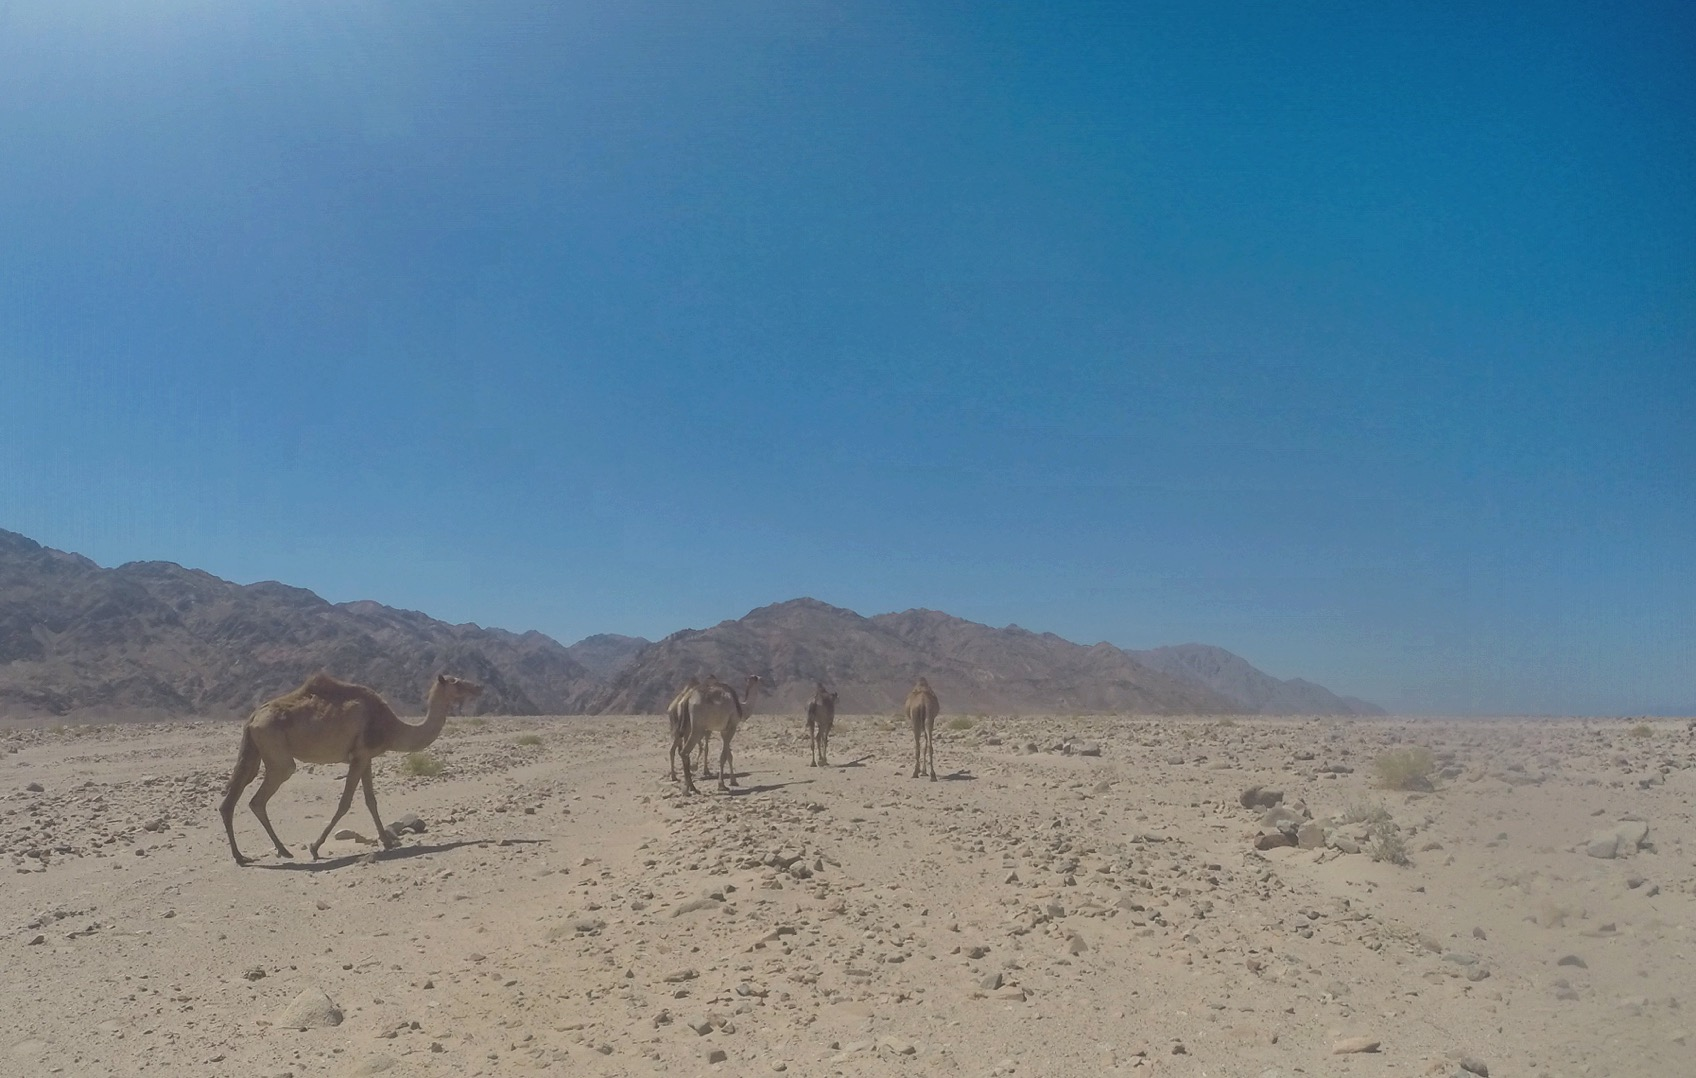 A wide angle view of three camels walking away in the desert with mountains in the background